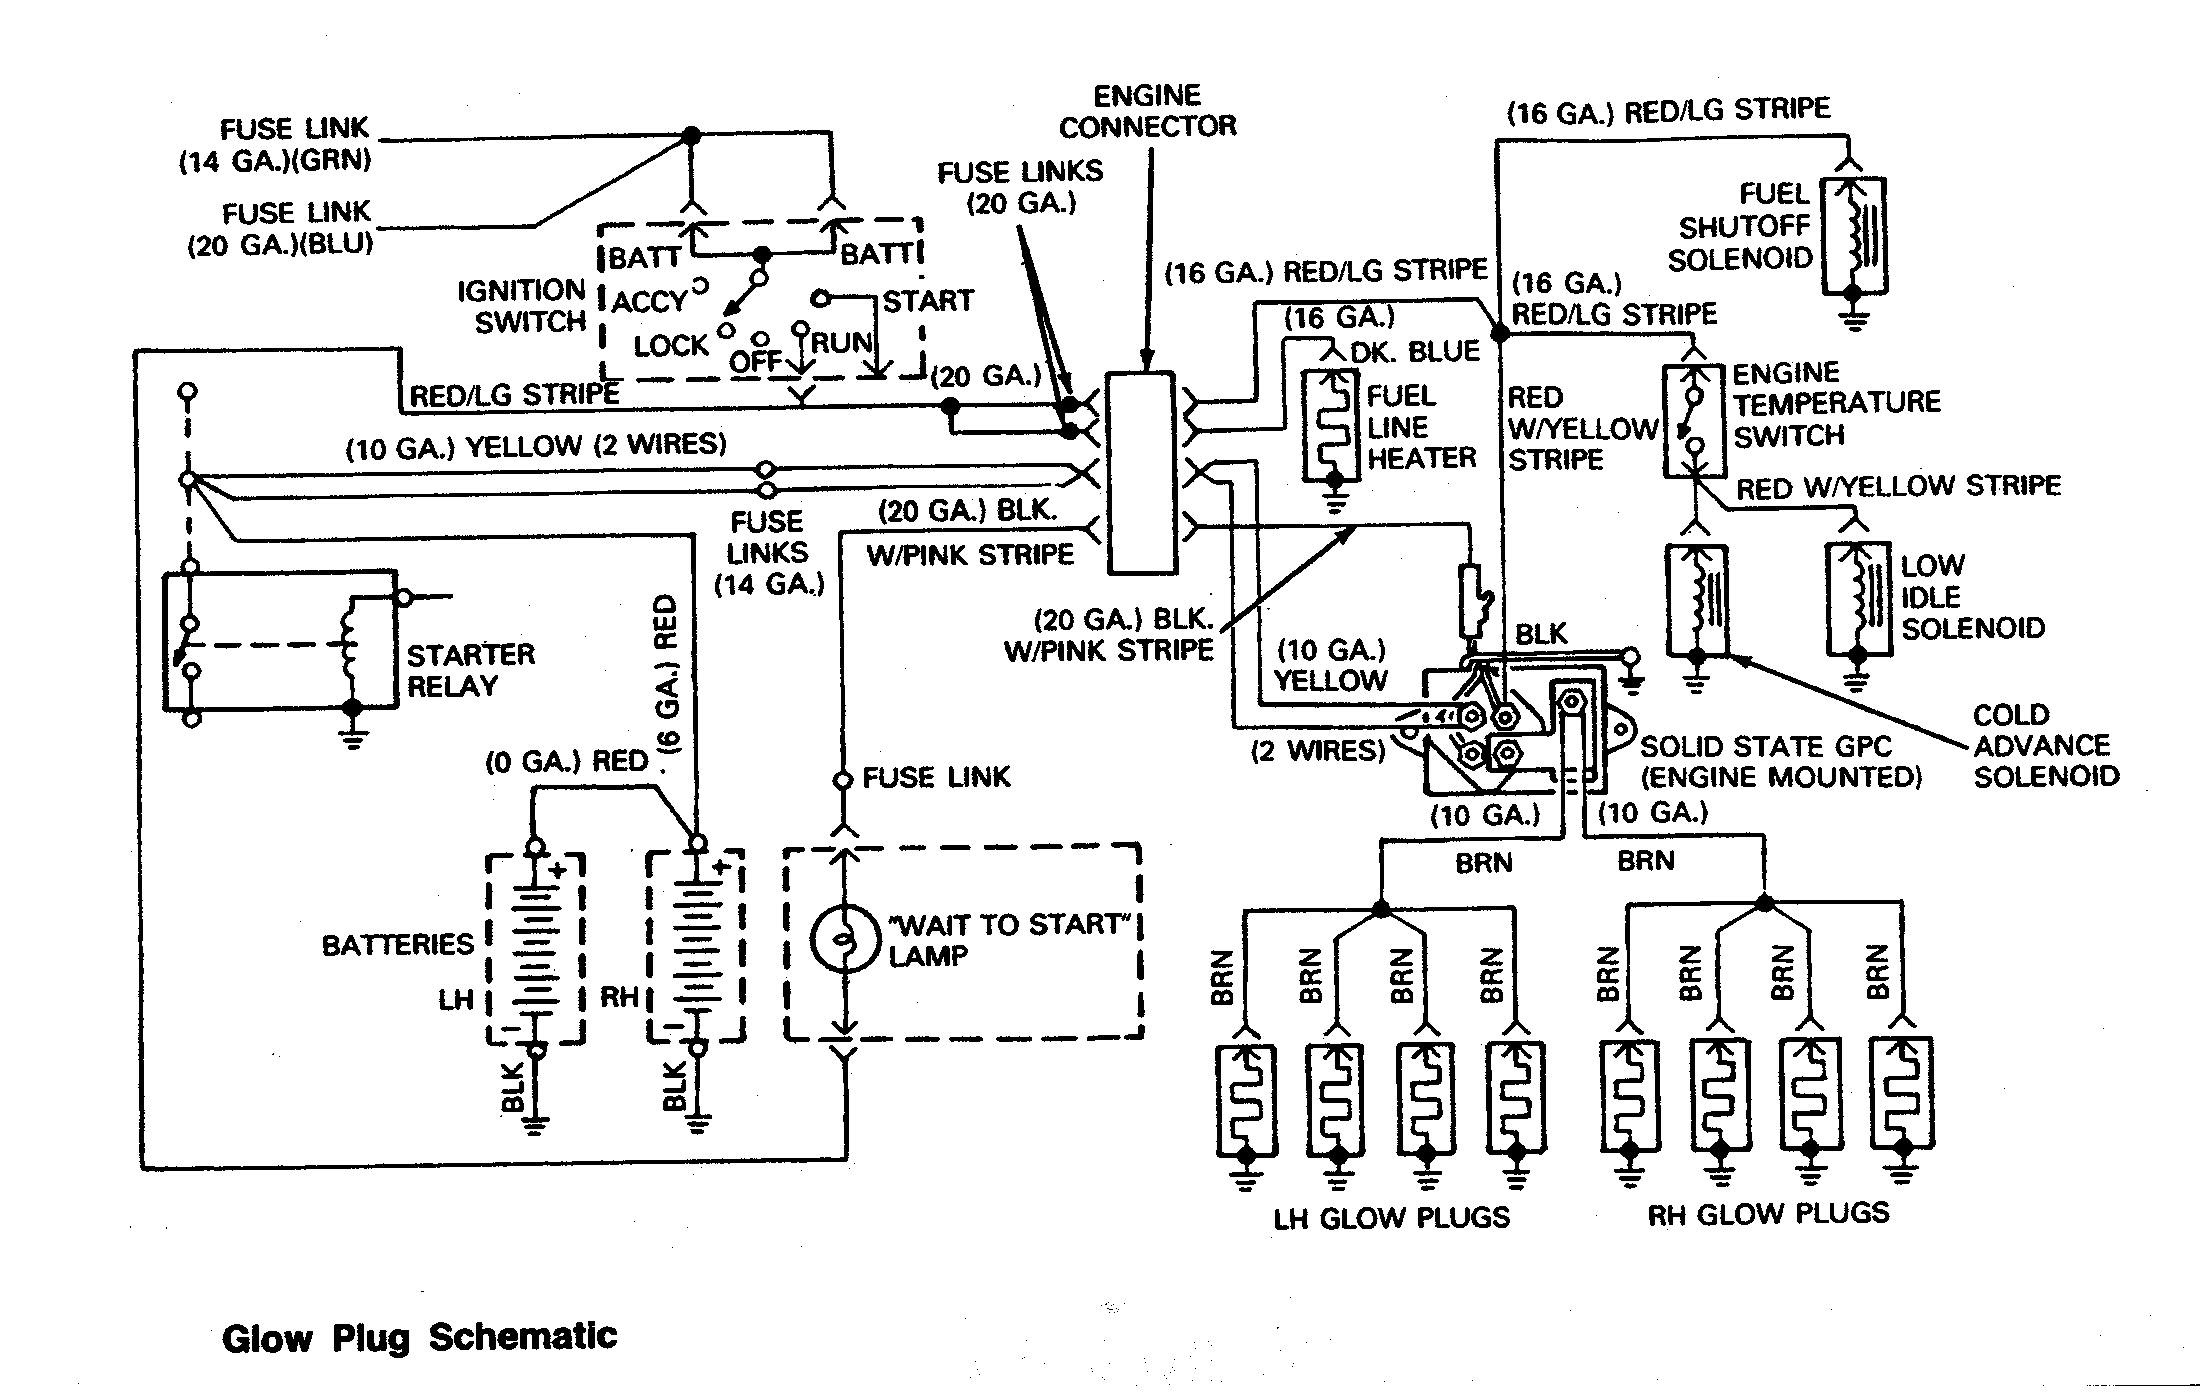 glow plug wiring diagram 7 3 pine tree powerstroke free engine